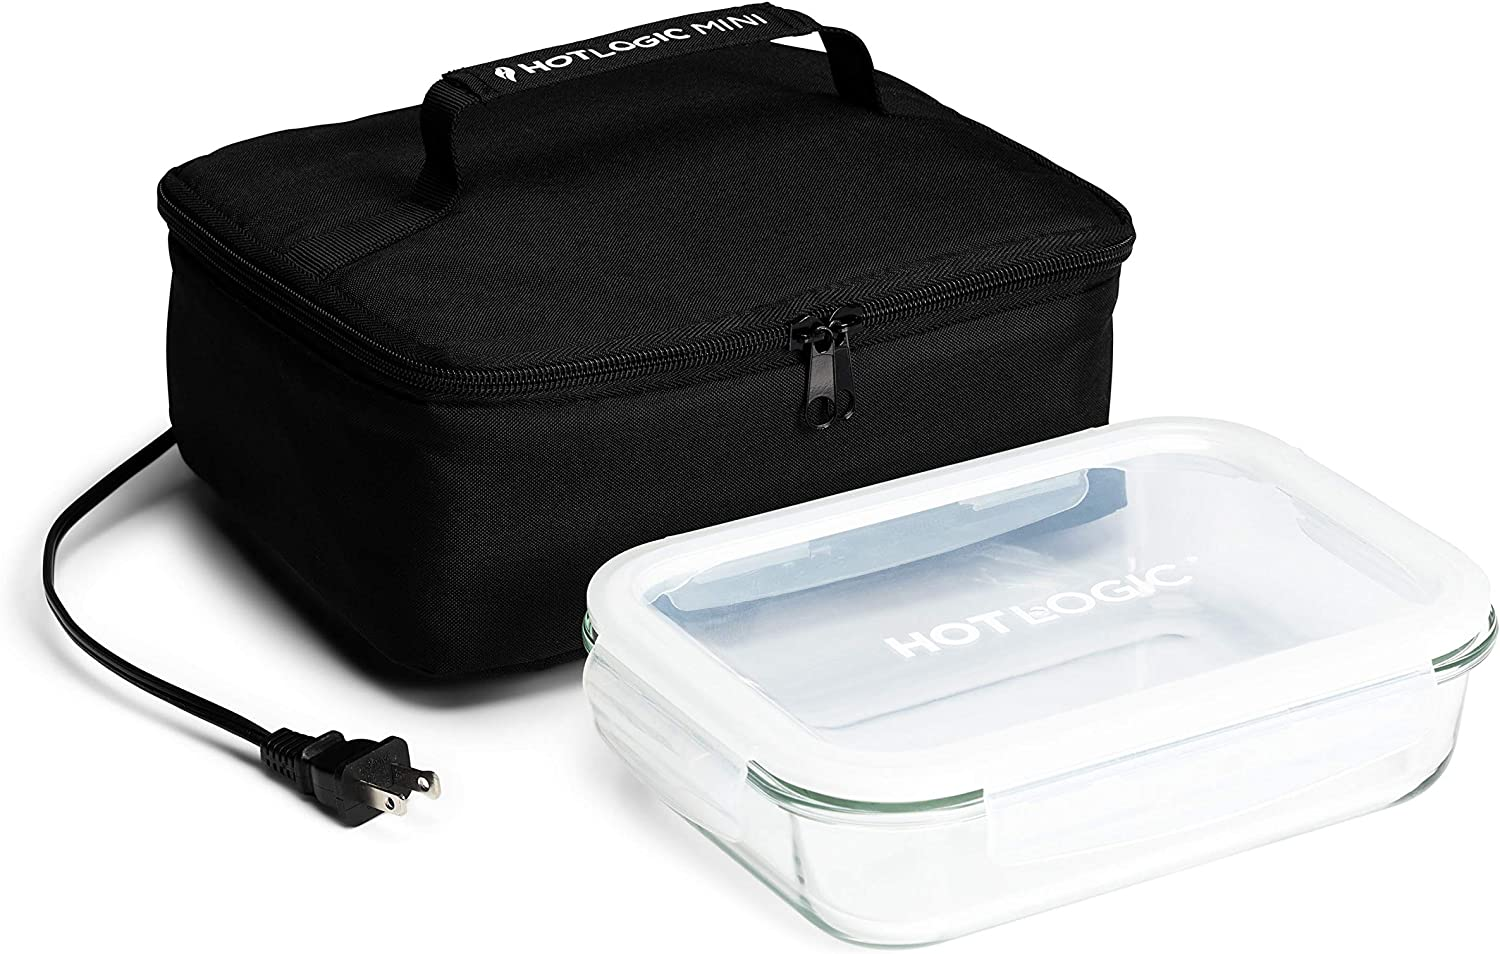 HotLogic 16801155-BLK Food Warming Tote Lunch Bag 120V with Glass Dish, Black